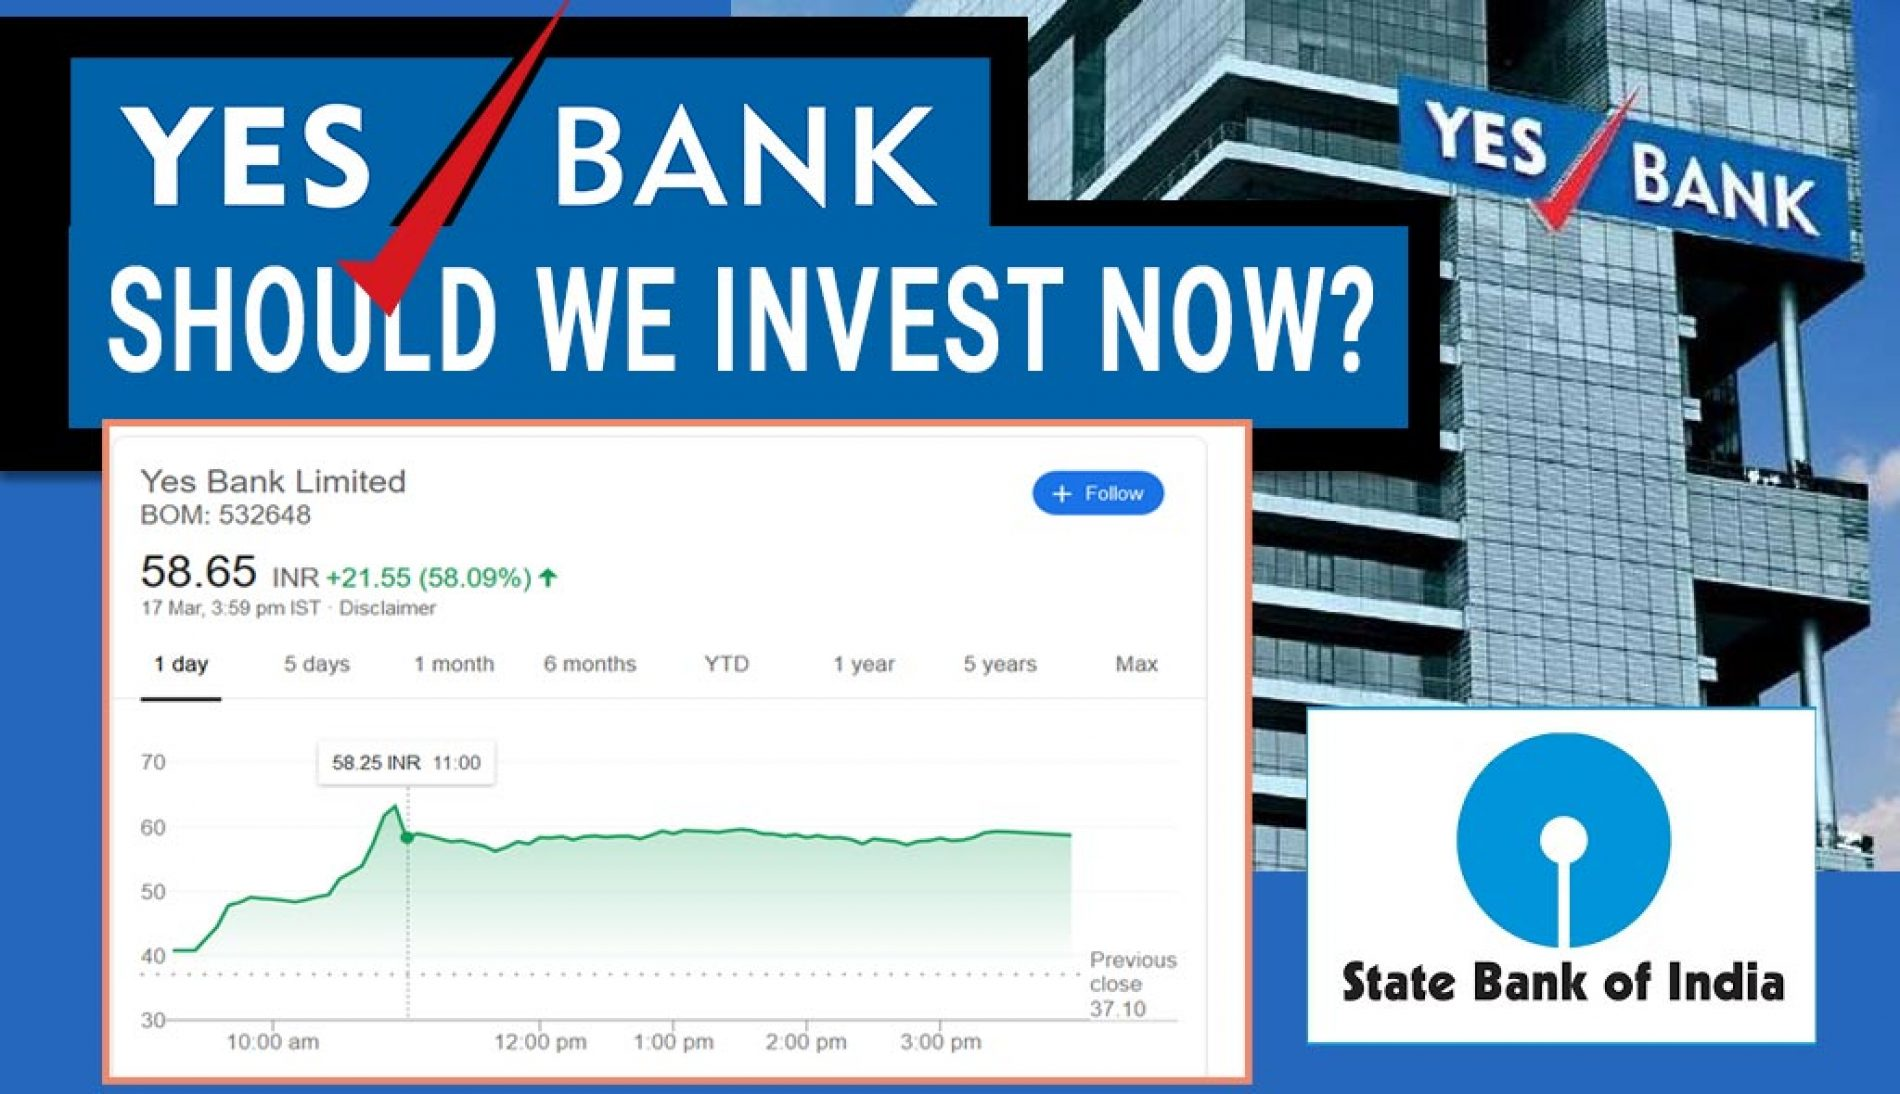 How to Invest in Yes Bank Shares?